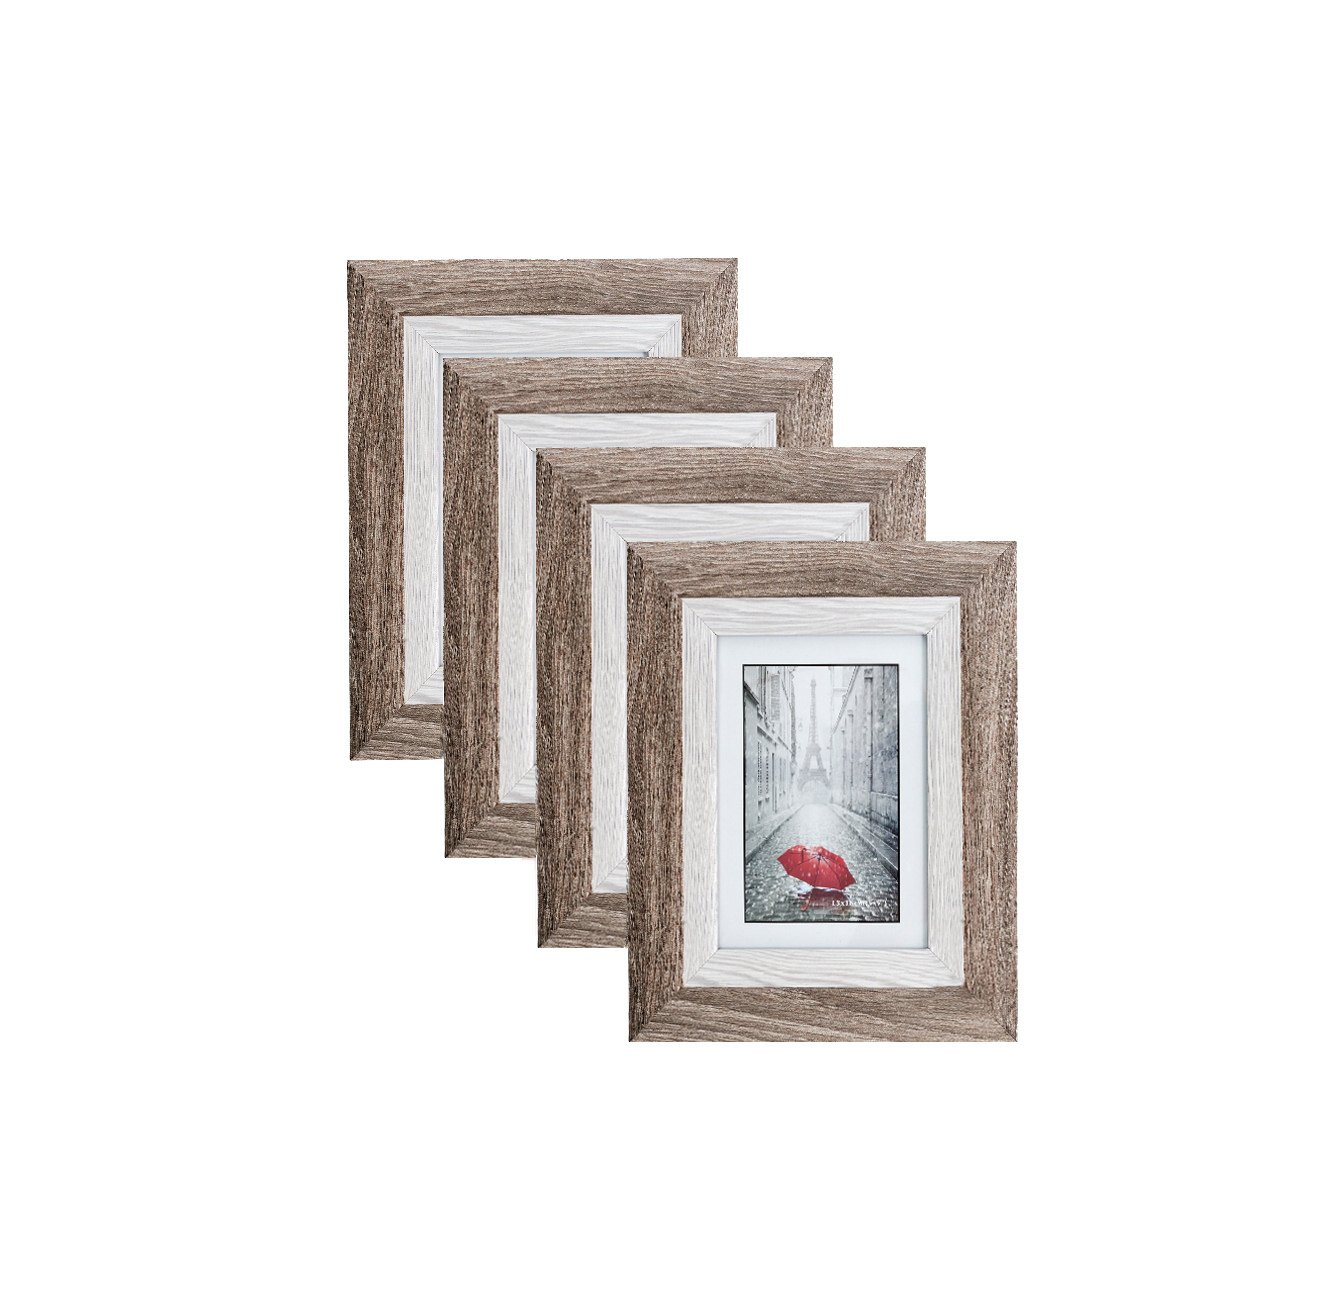 Distressed Brown MDF Wood Picture Frame 5x7 (4 pc) Display with Photo Glass Front, Easel Back, and Wall Hang Clip   4 PIECE SET